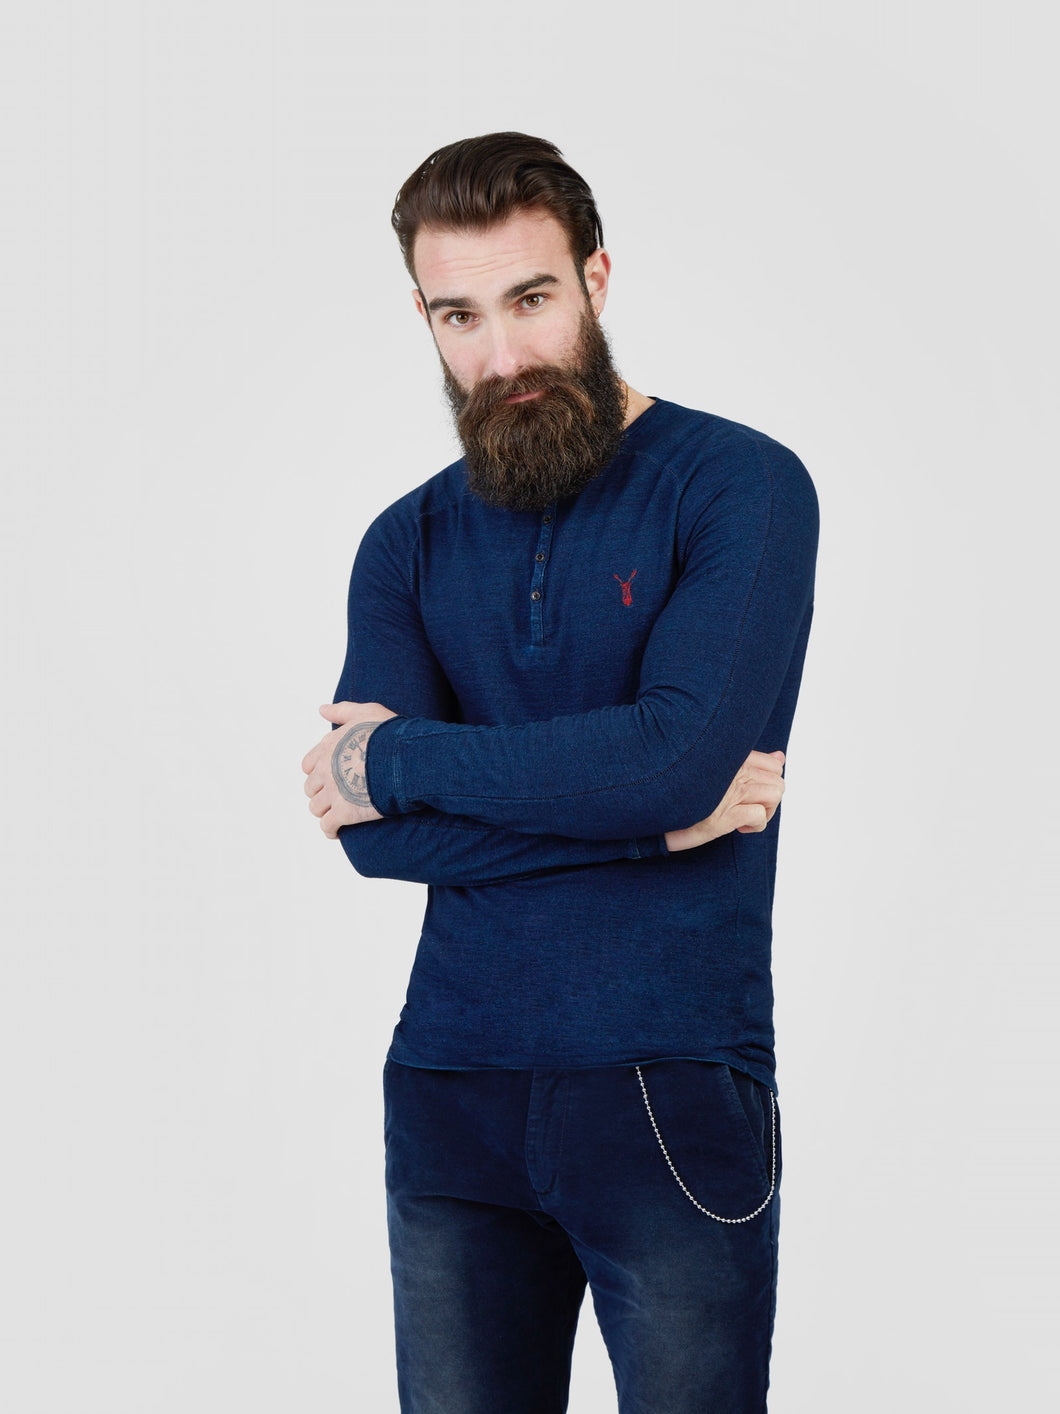 Pearly King, Whick Long-Sleeve Top, Indigo Blue